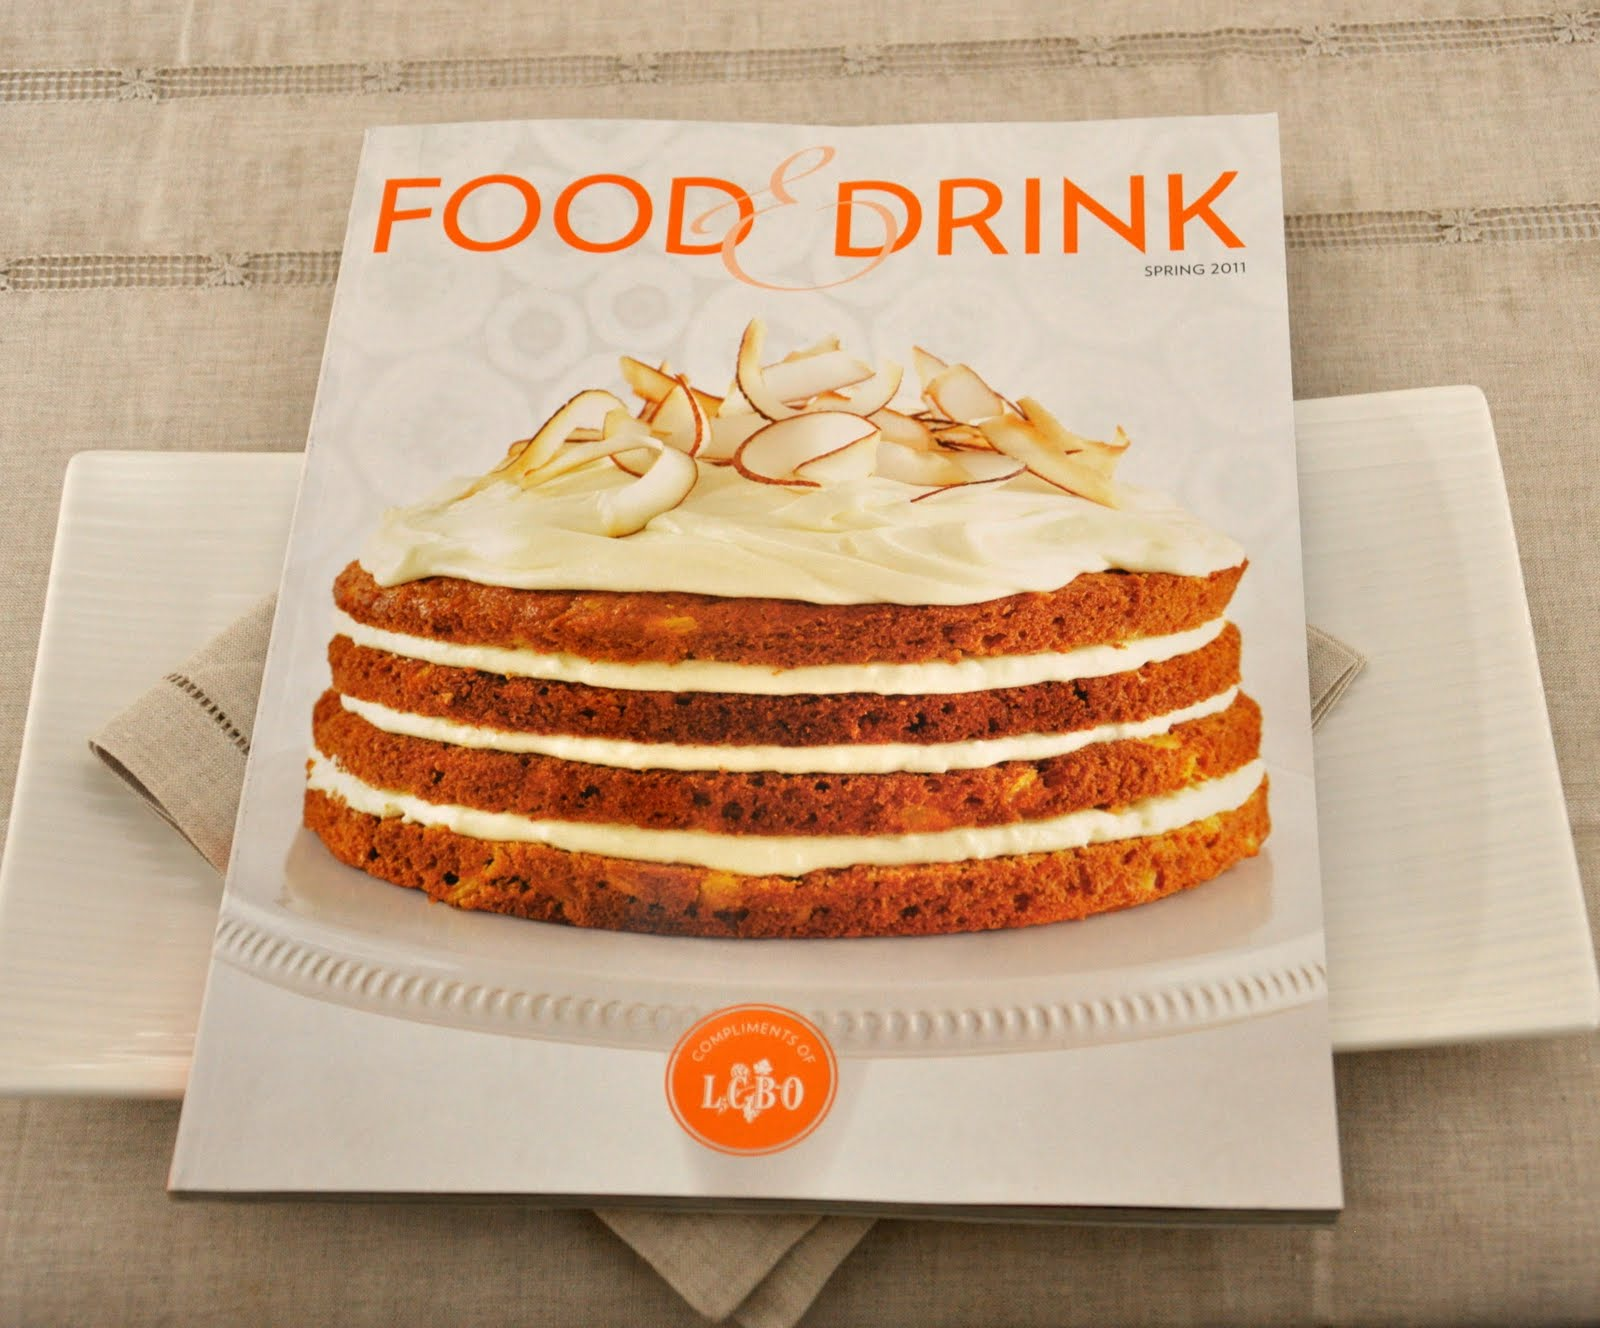 LCBO Recipes Food and Drink LCBO Recipes Food and Drink http://kehein ...